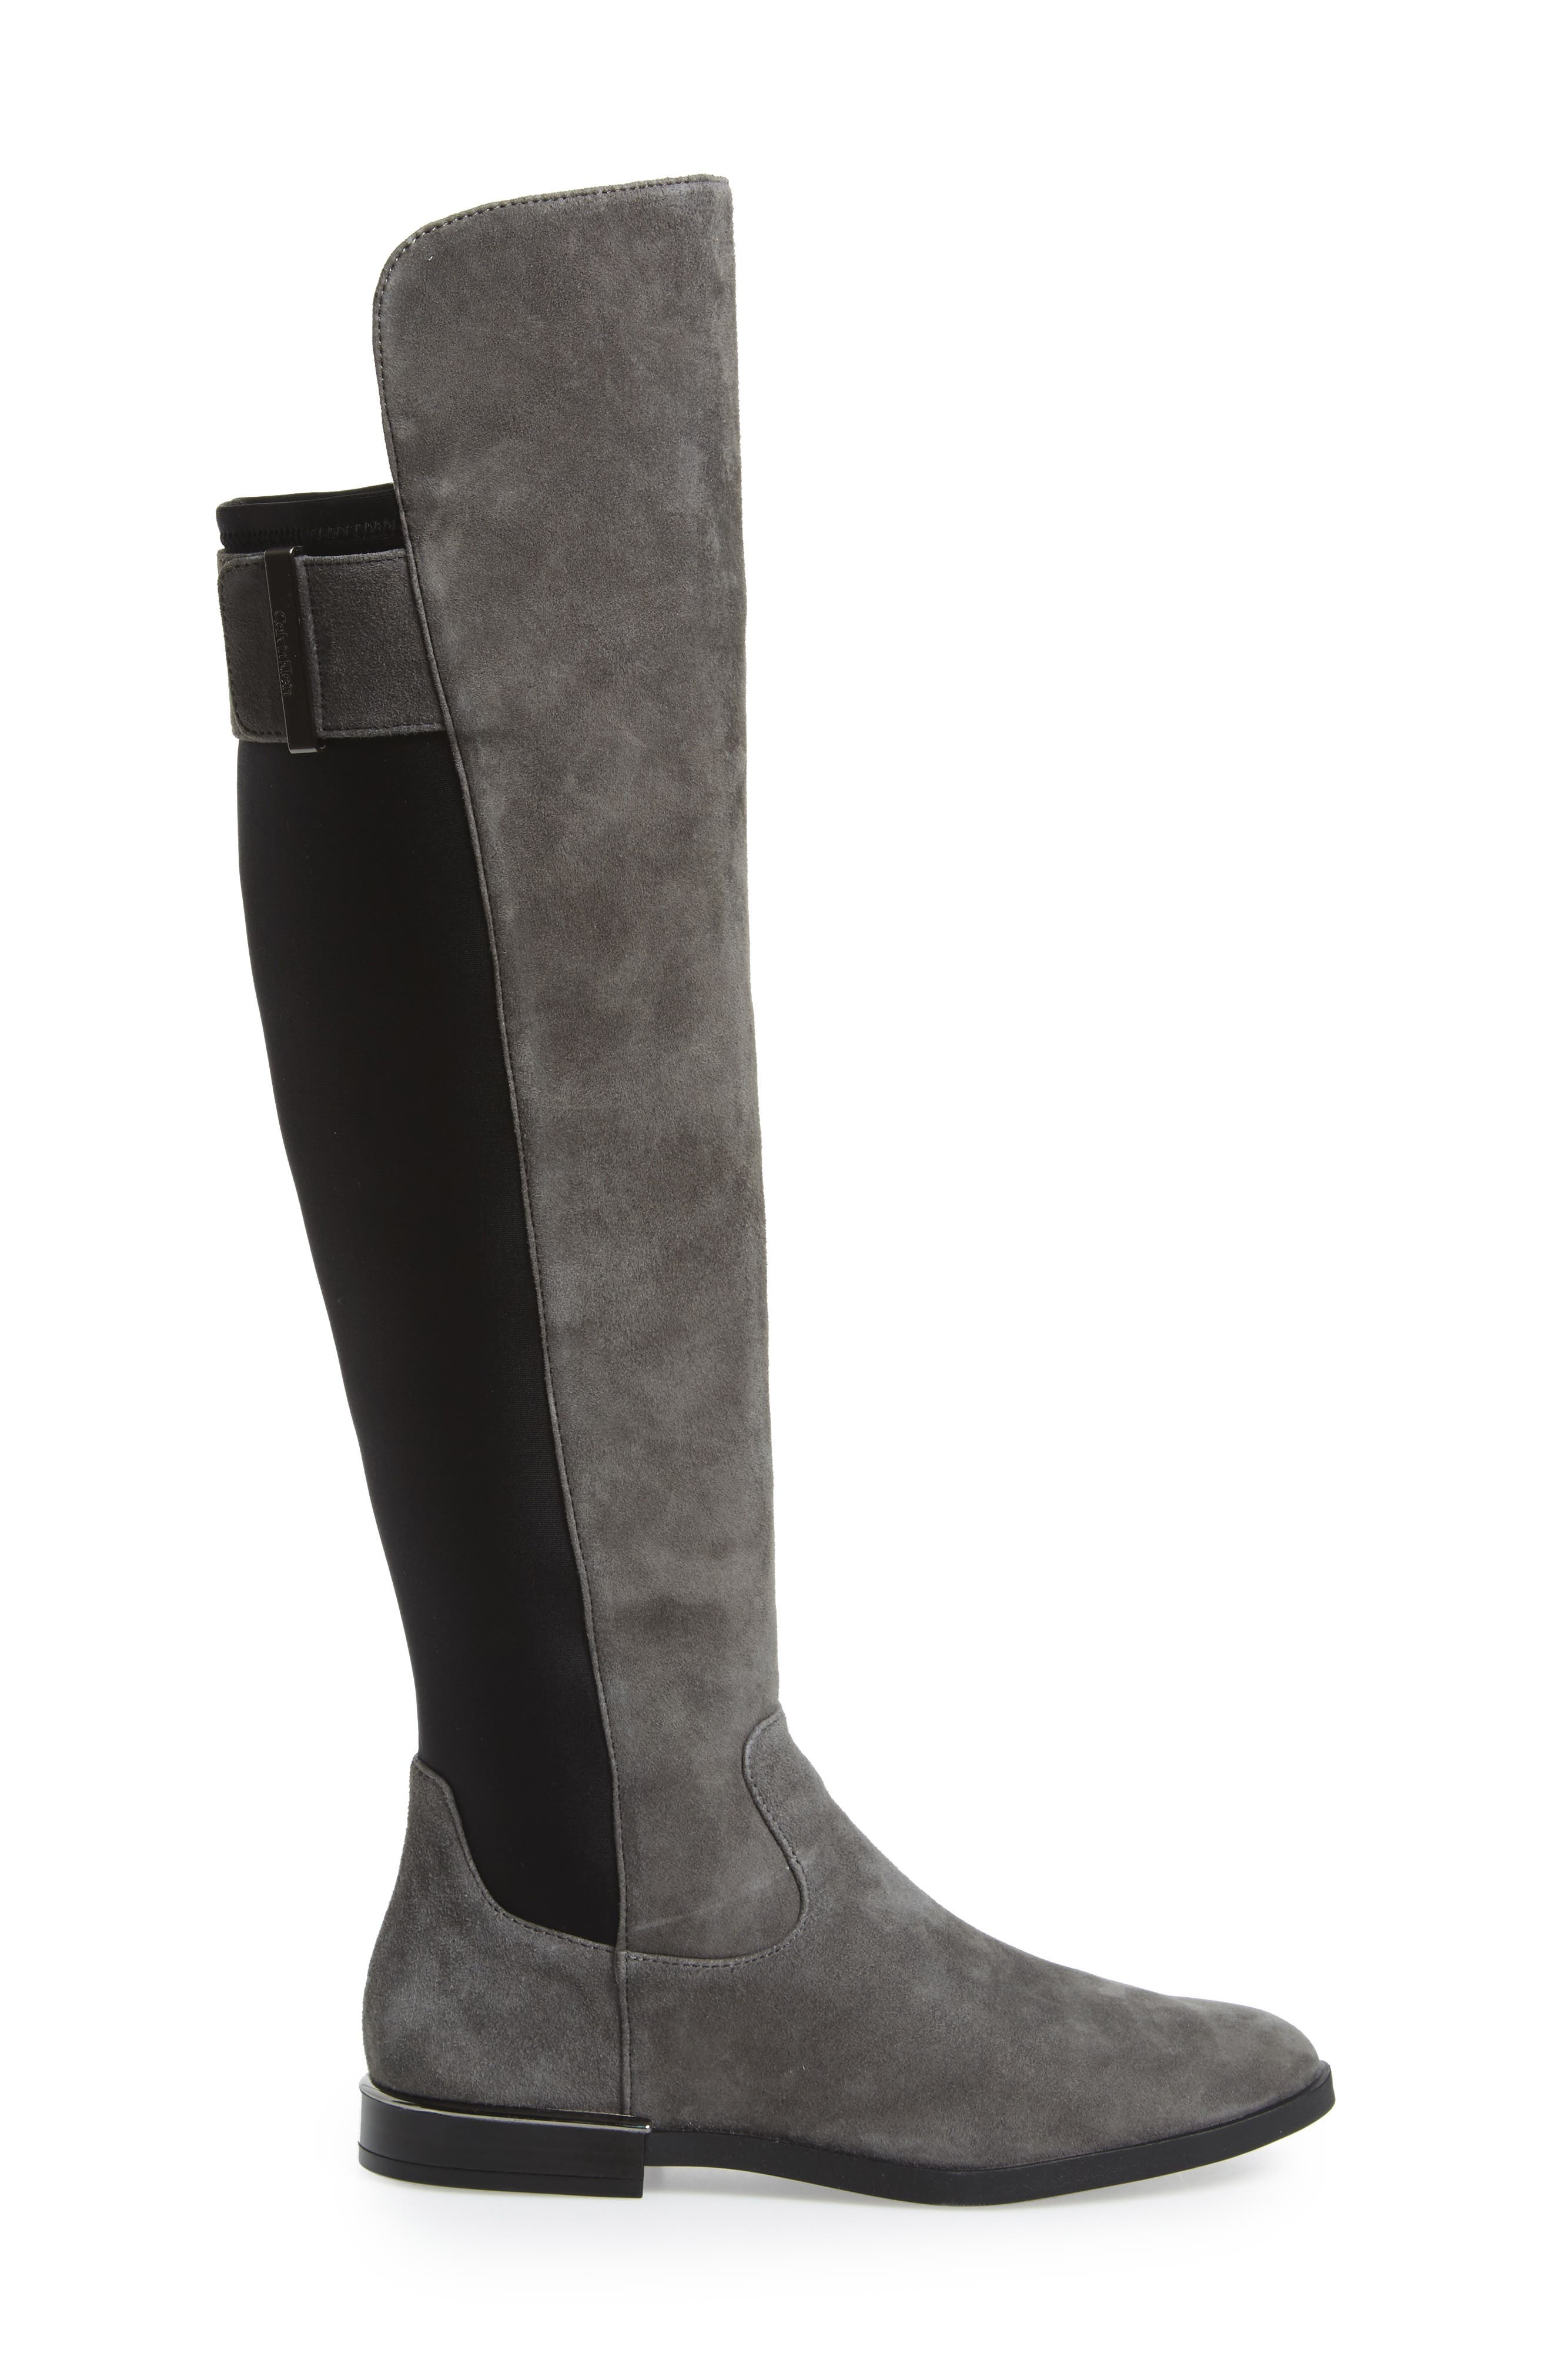 Priya Over the Knee Boot,                             Alternate thumbnail 3, color,                             Slate/ Black Suede